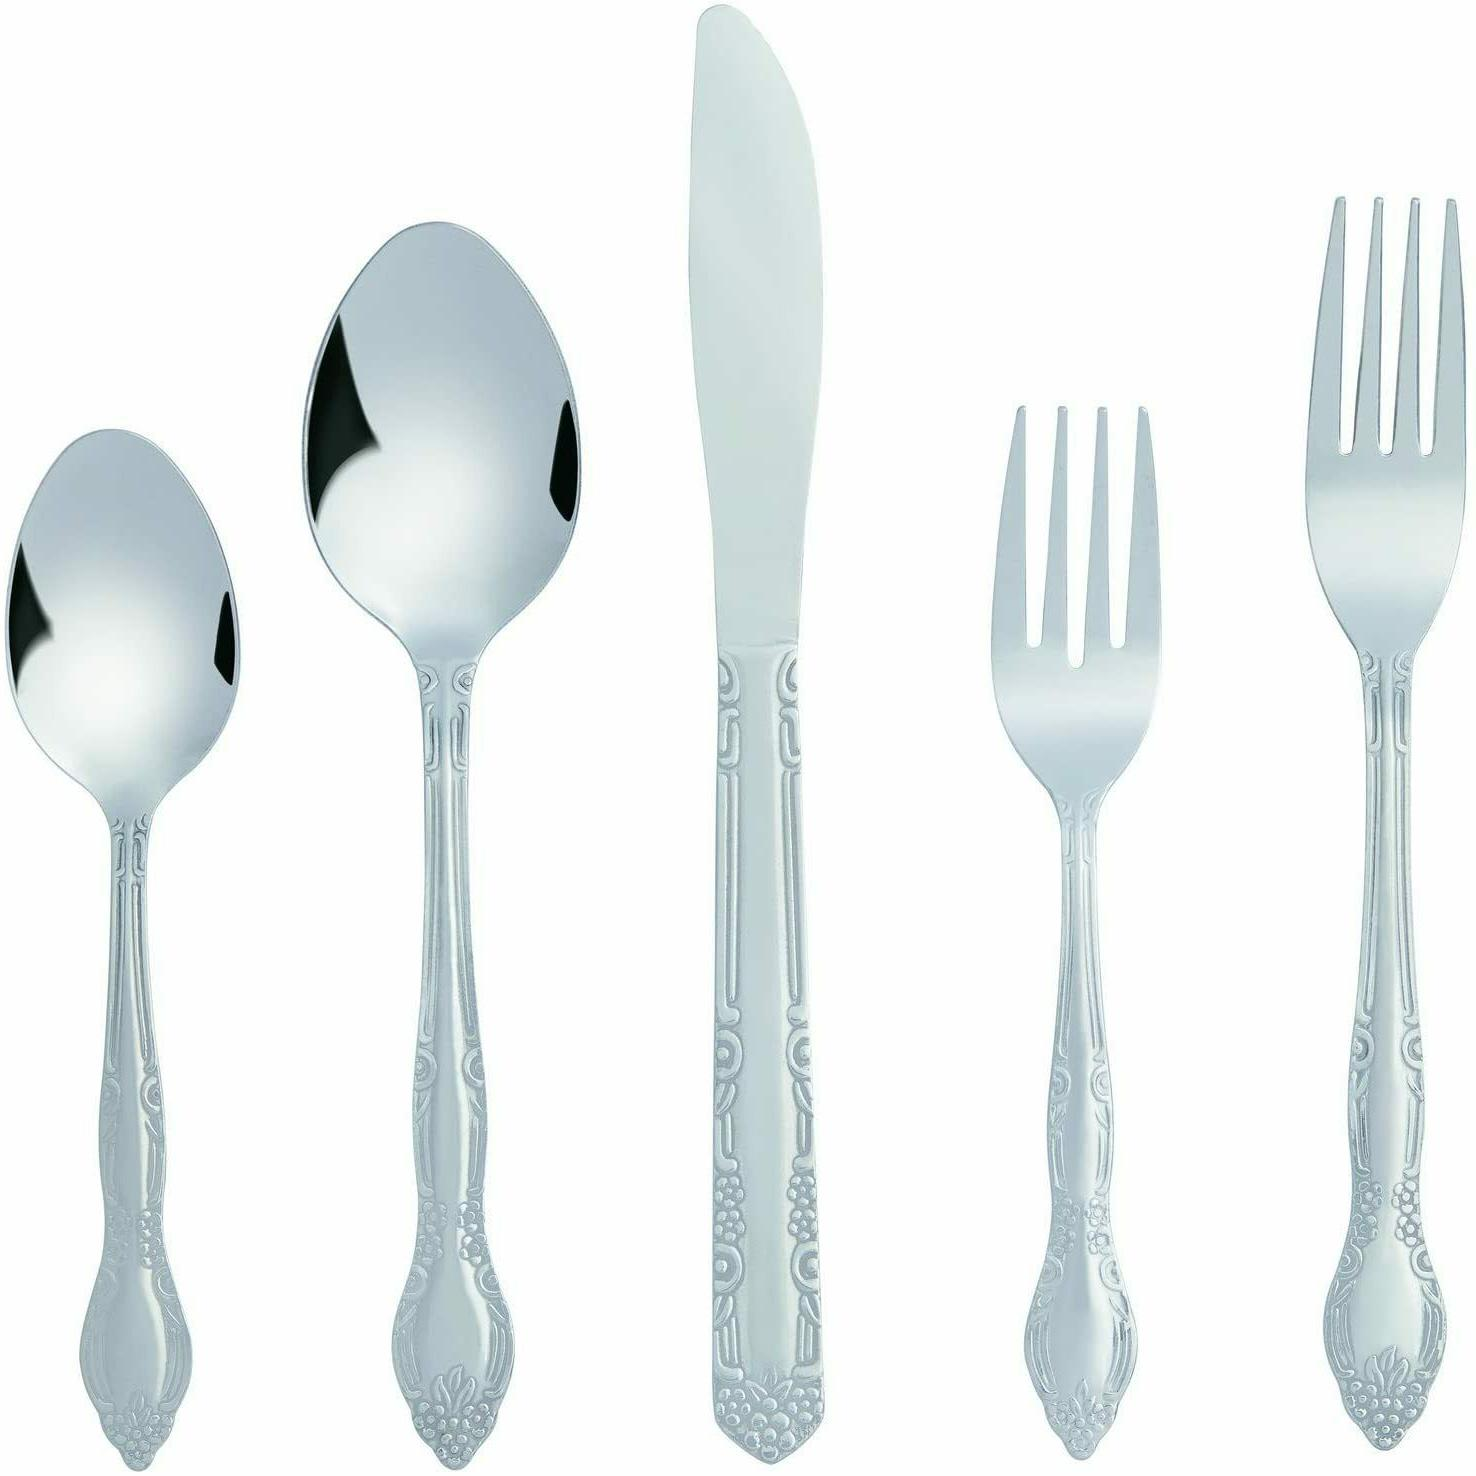 20 piece Silverware Flatware Cutlery Sets for 4 Stainless St